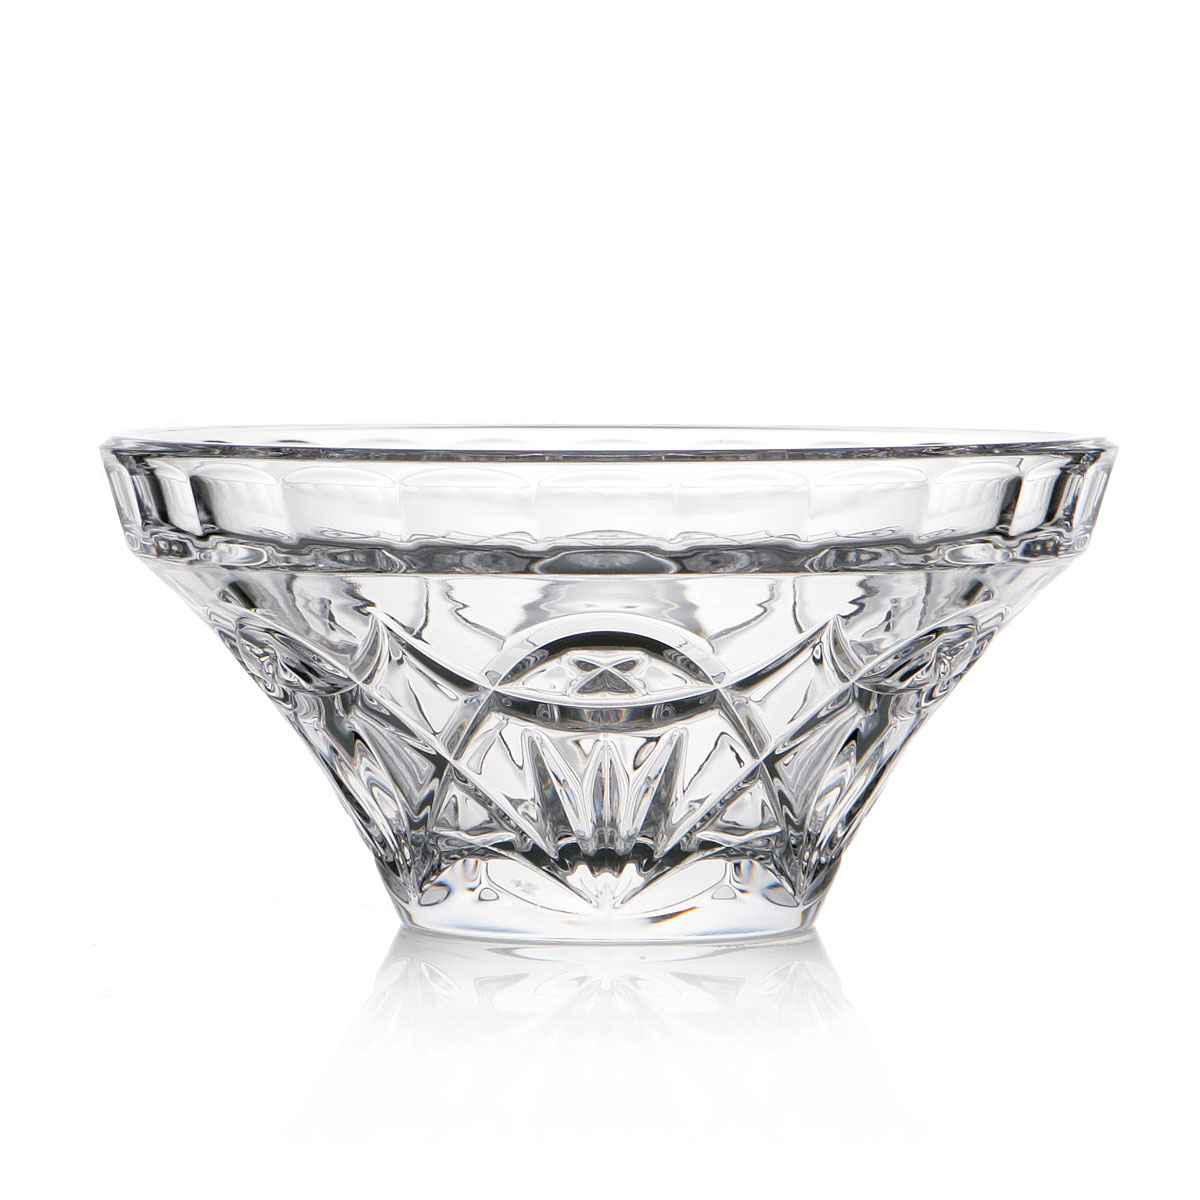 "Cashs Ireland, Celtic Ring 6"" Crystal Bowl"